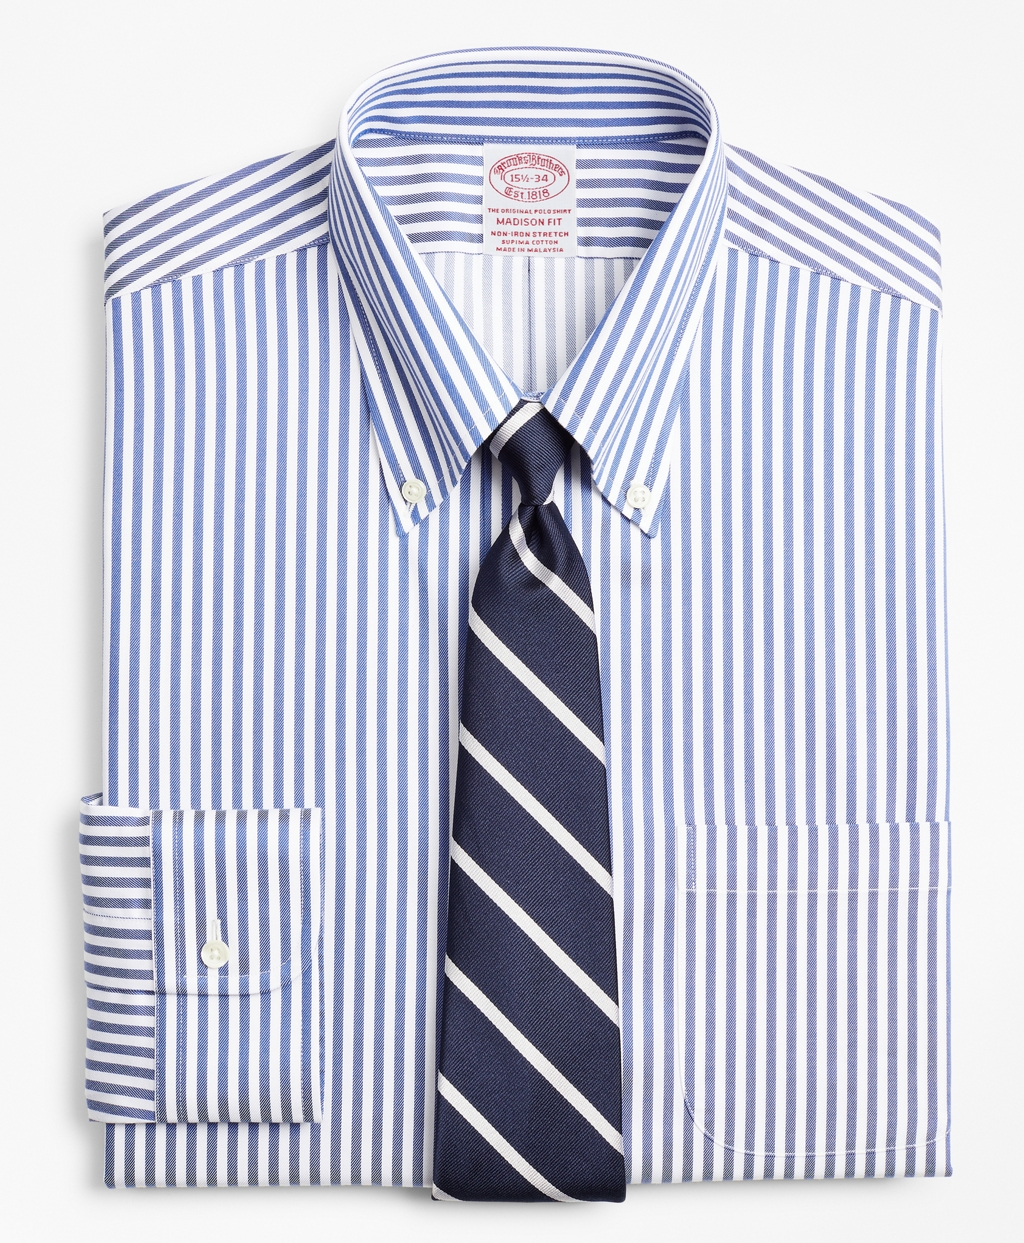 Mens Vintage Shirts – Casual, Dress, T-shirts, Polos Brooks Brothers Mens Stretch Regular Classic-Fit Dress Shirt Non-Iron Twill Button-Down Collar Bold Stripe $79.80 AT vintagedancer.com